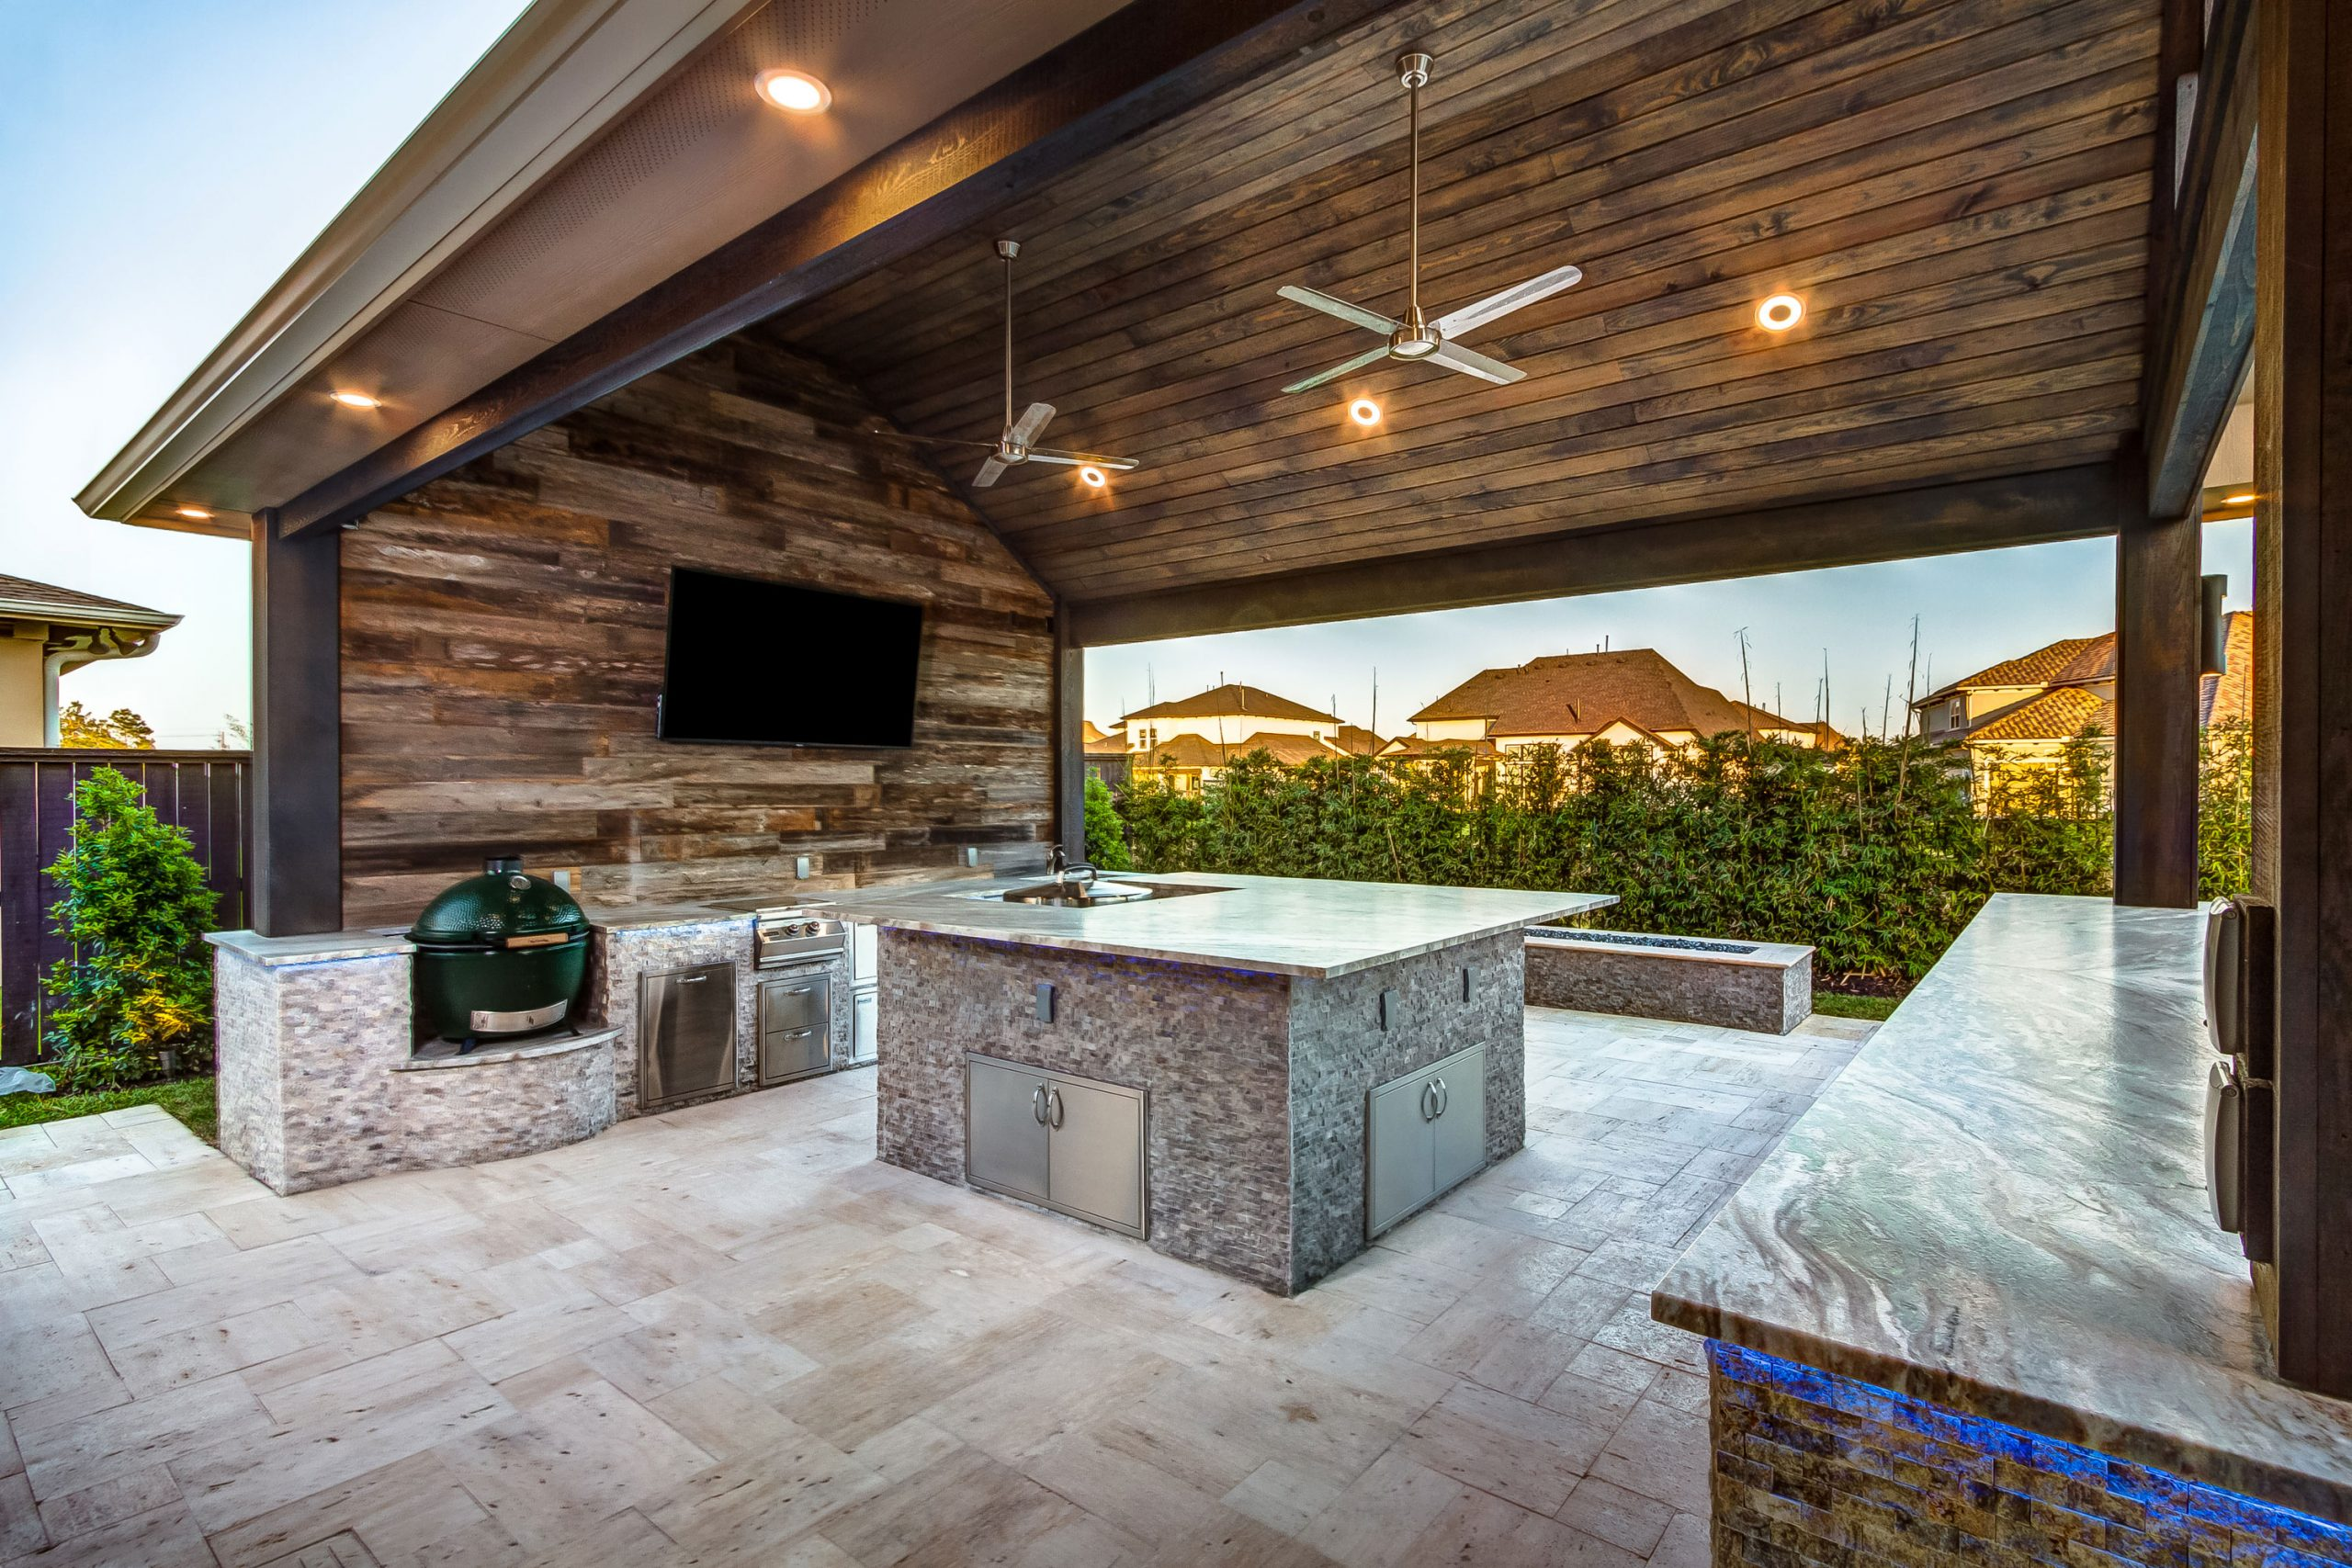 Designing a Contemporary Outdoor Kitchen Near Your Pool, Creekstone Outdoor Living, Spring, TX